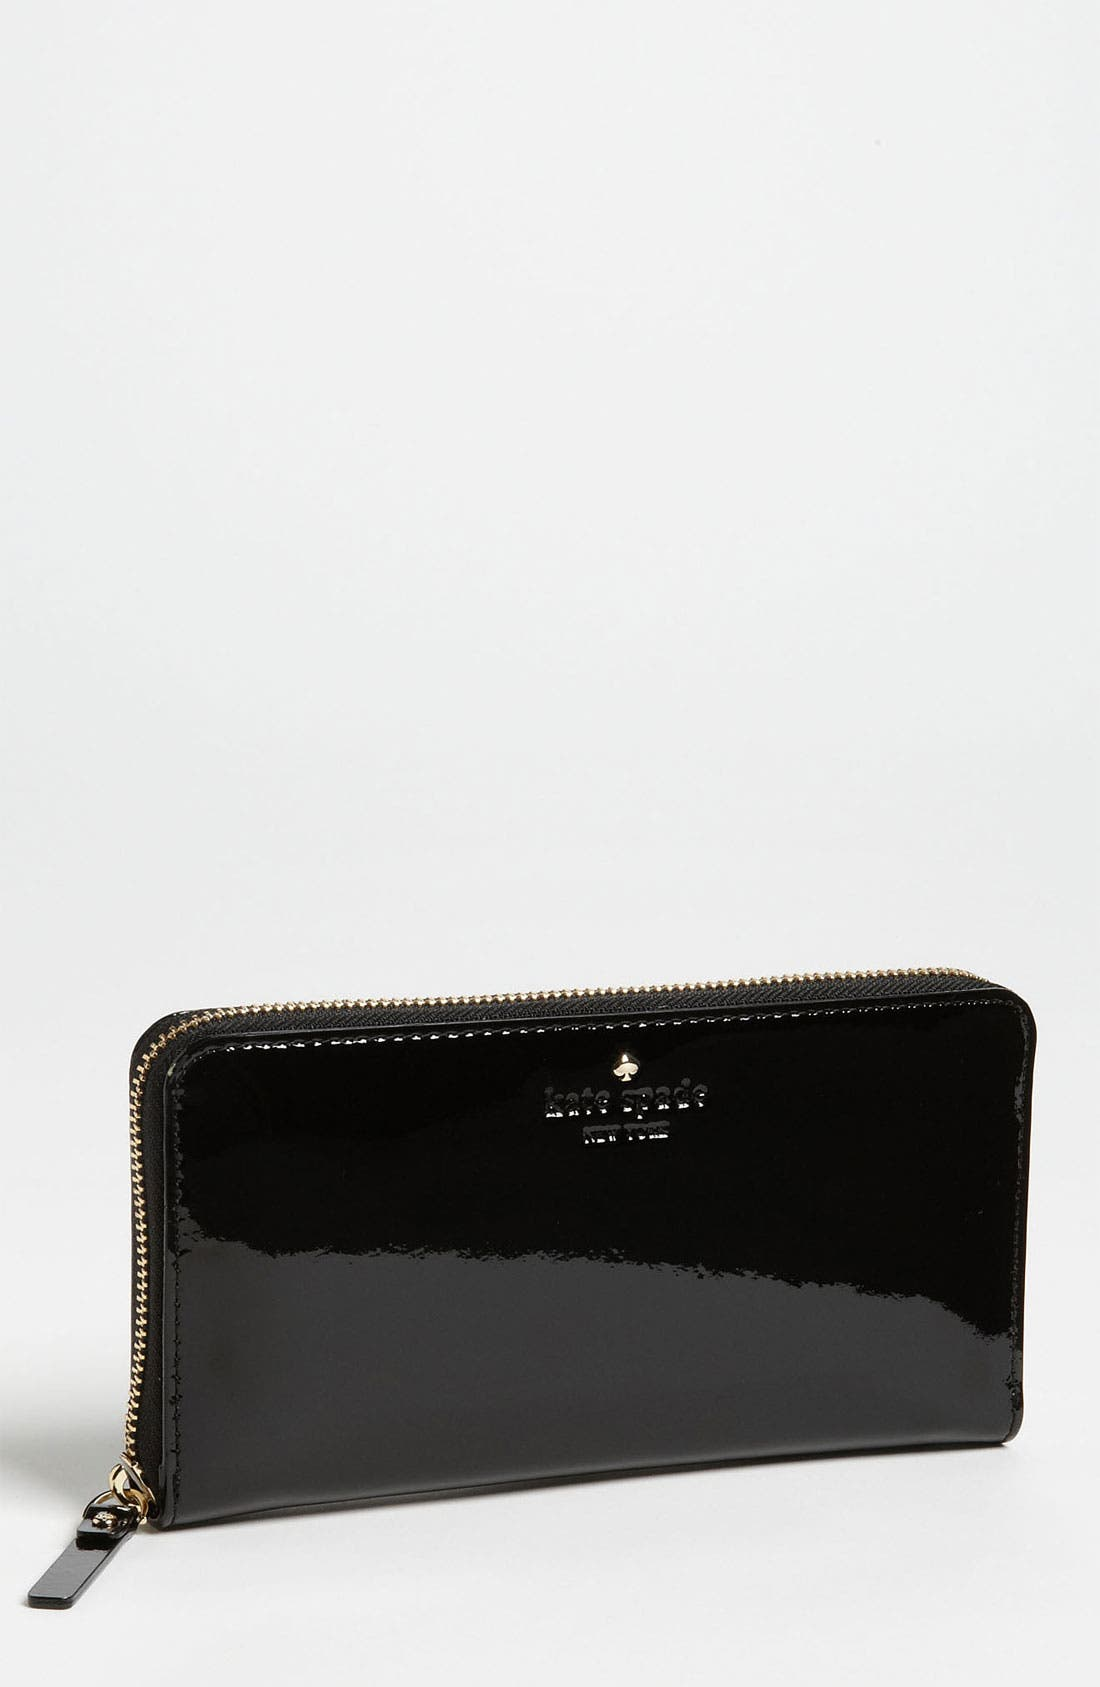 Main Image - kate spade new york 'harrison street - lacey' wallet